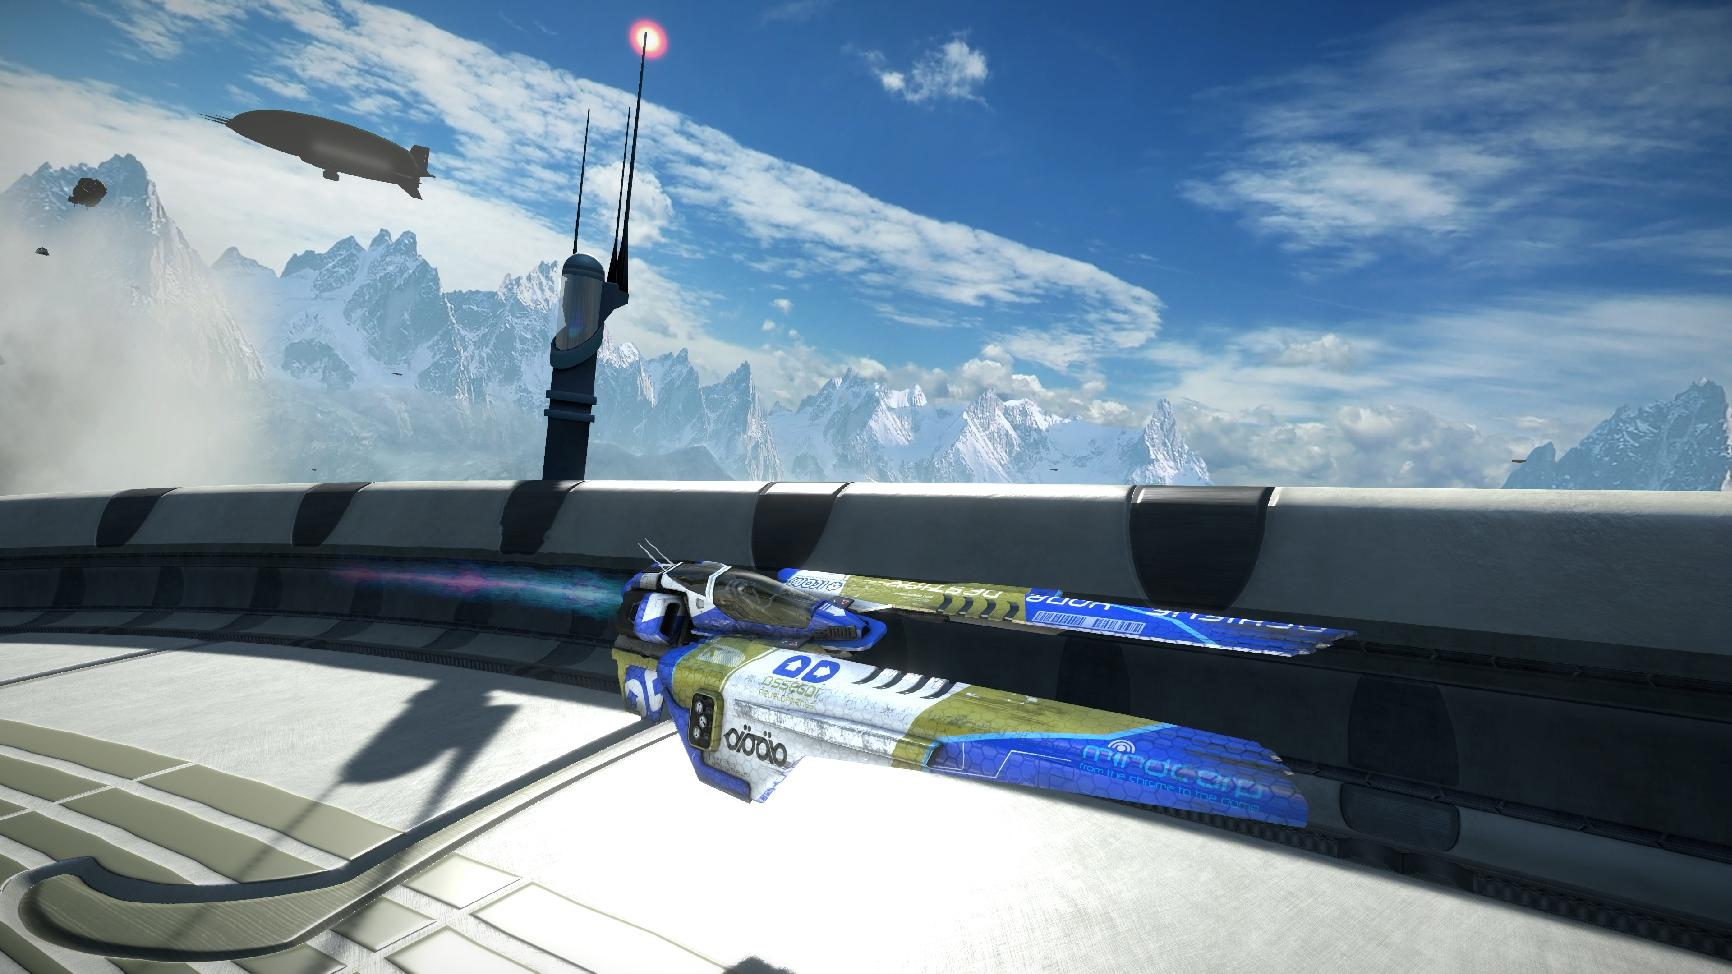 PlayStation Experience 2016 trailers: remasters and retro-inspired games - 'WipEout,' 'Crash Bandicoot,' 'Strafe'